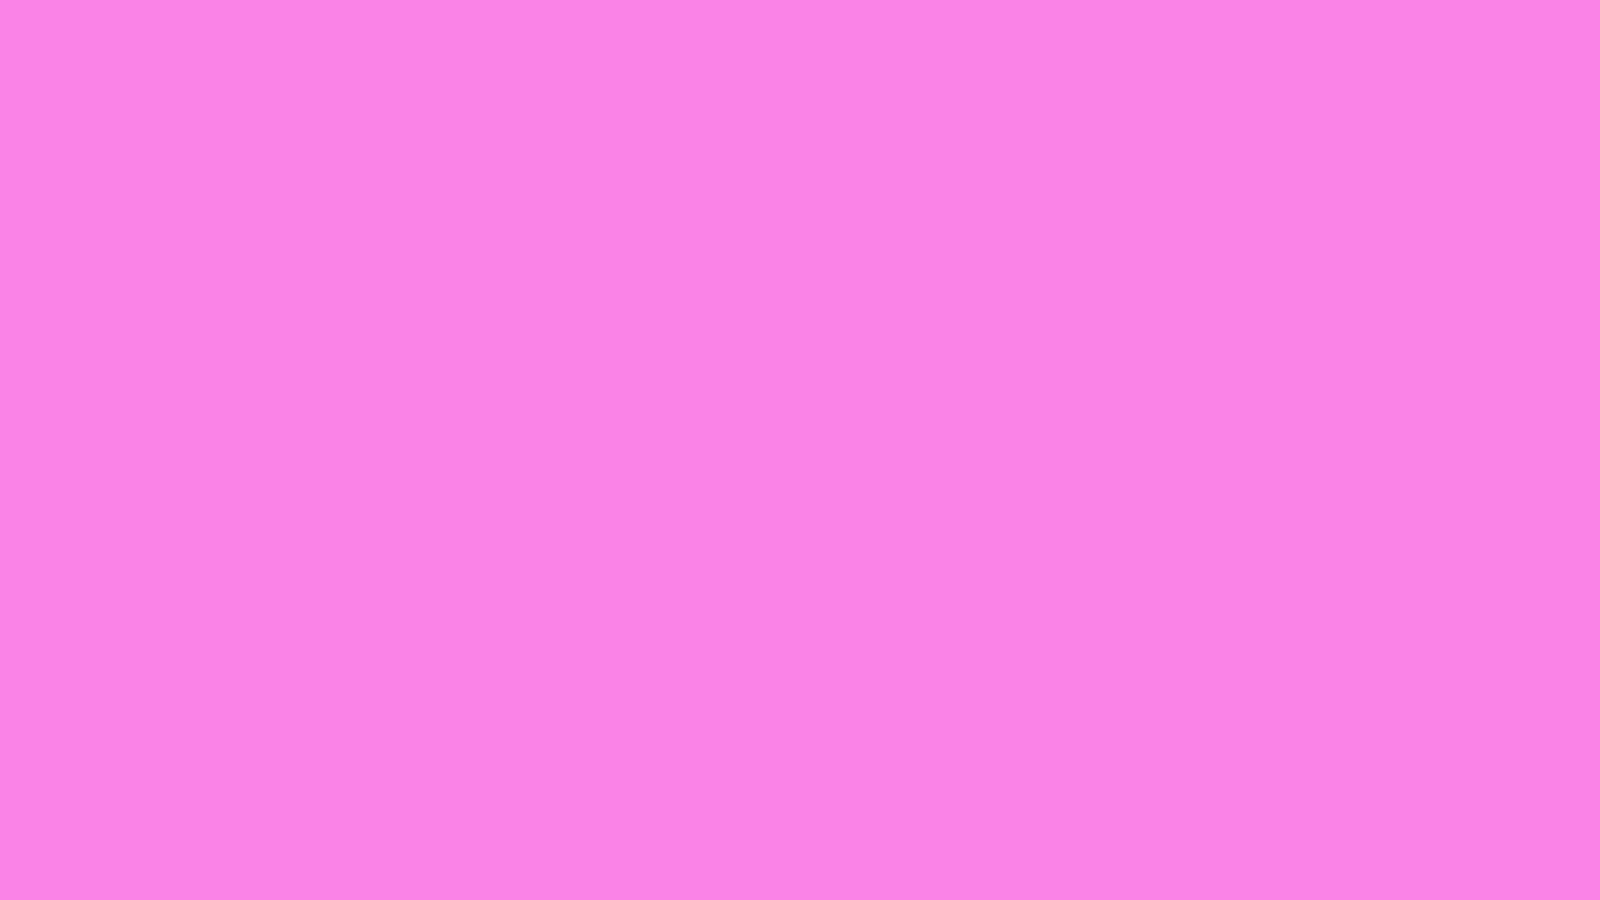 1600x900 Pale Magenta Solid Color Background